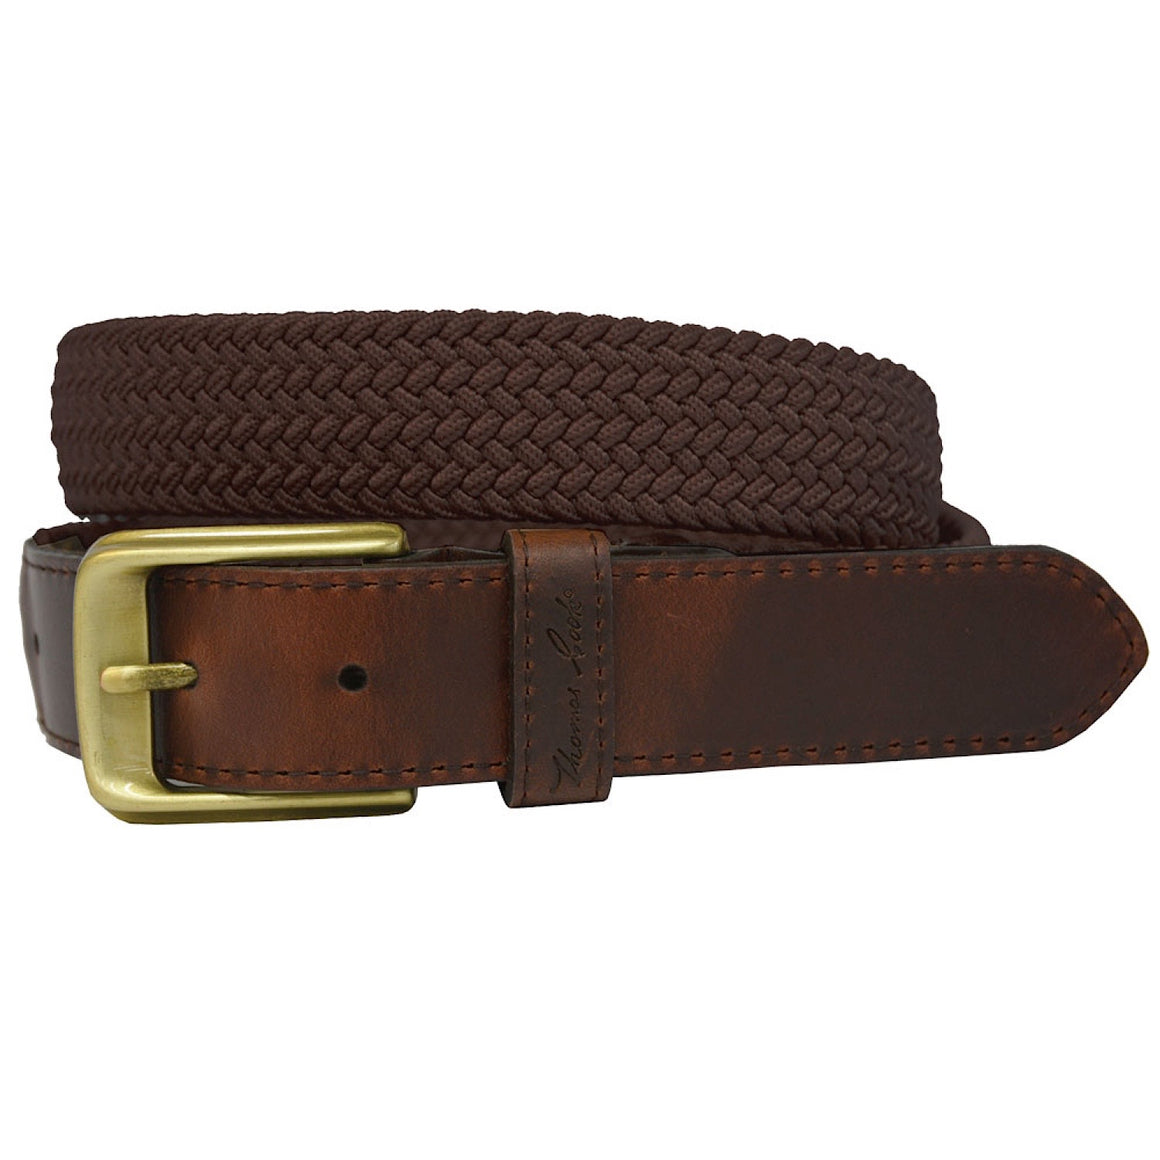 Thomas Cook Comfort Waist Belt Dark Brown/Dark Brown